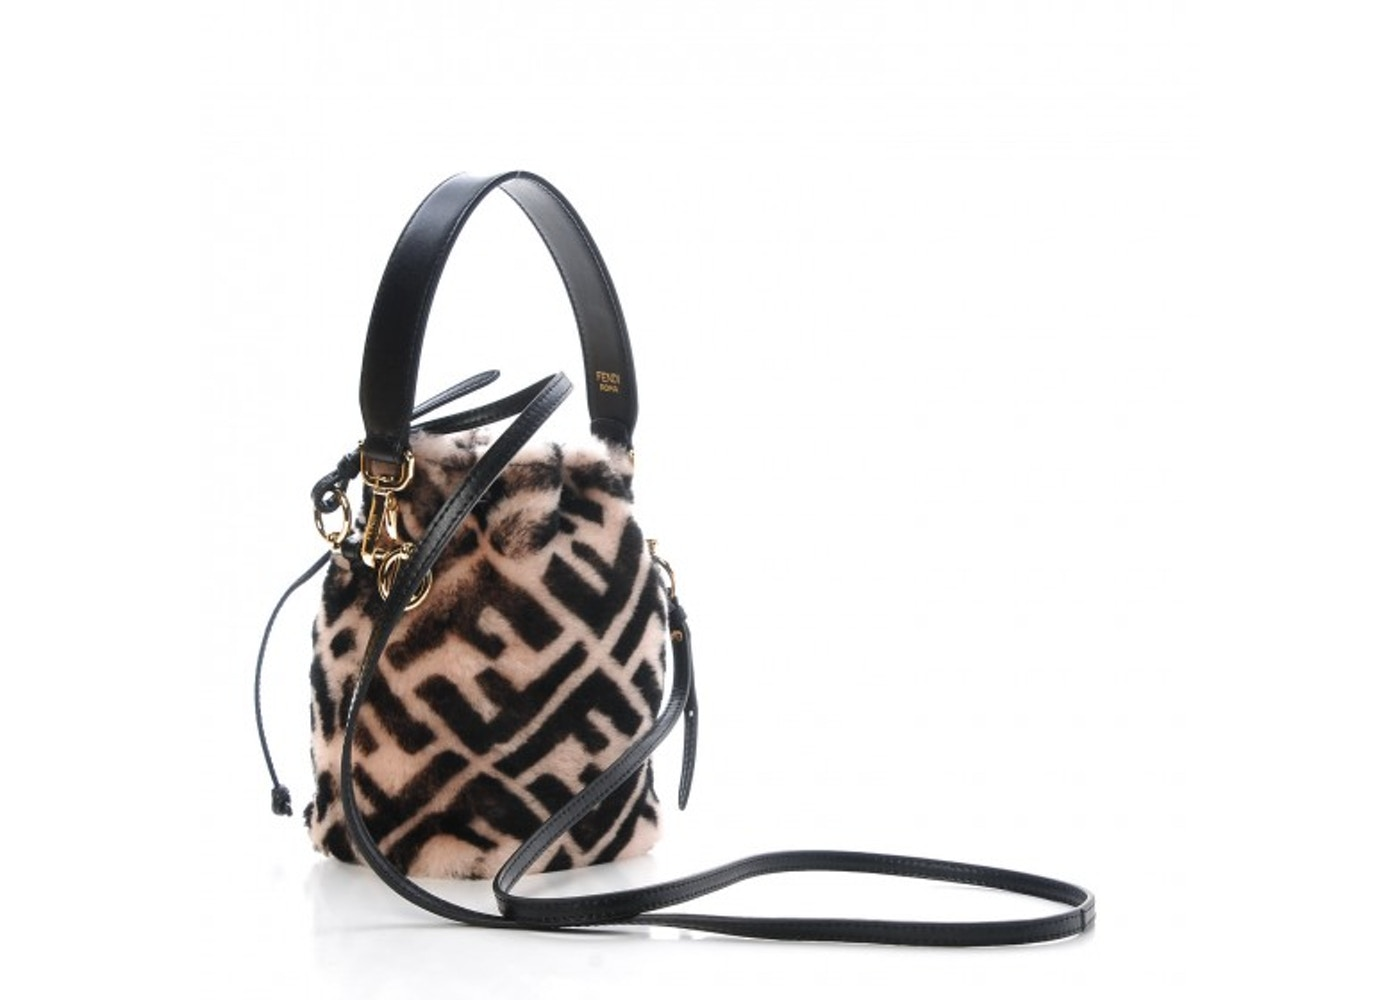 0e66e64d93ca Buy   Sell Fendi Handbags - Average Sale Price